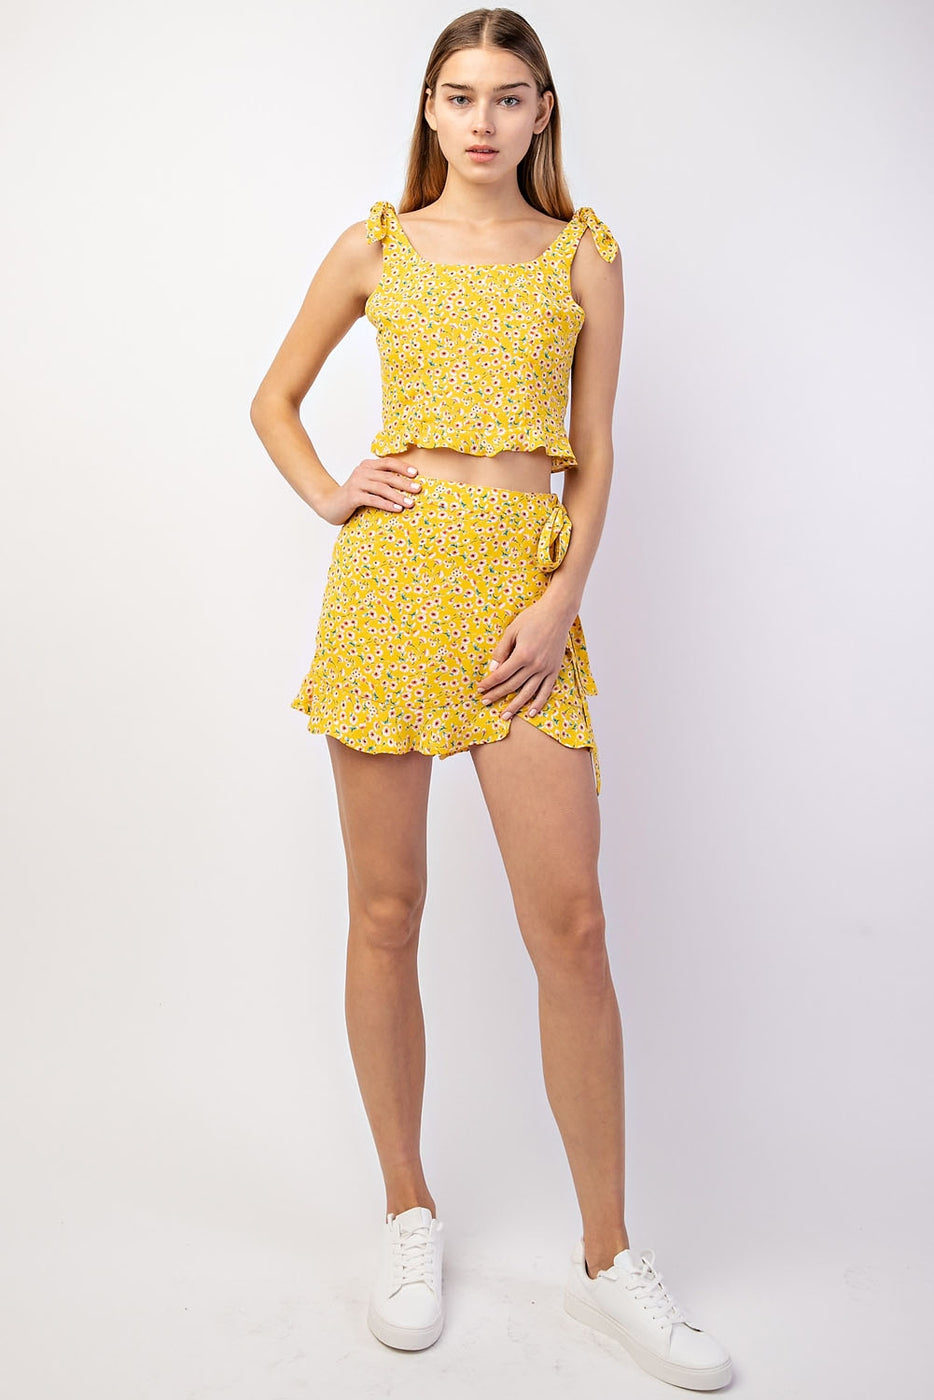 Floral Crop Top With Ruffle Detail And Shoulder Ties - Siin Bees